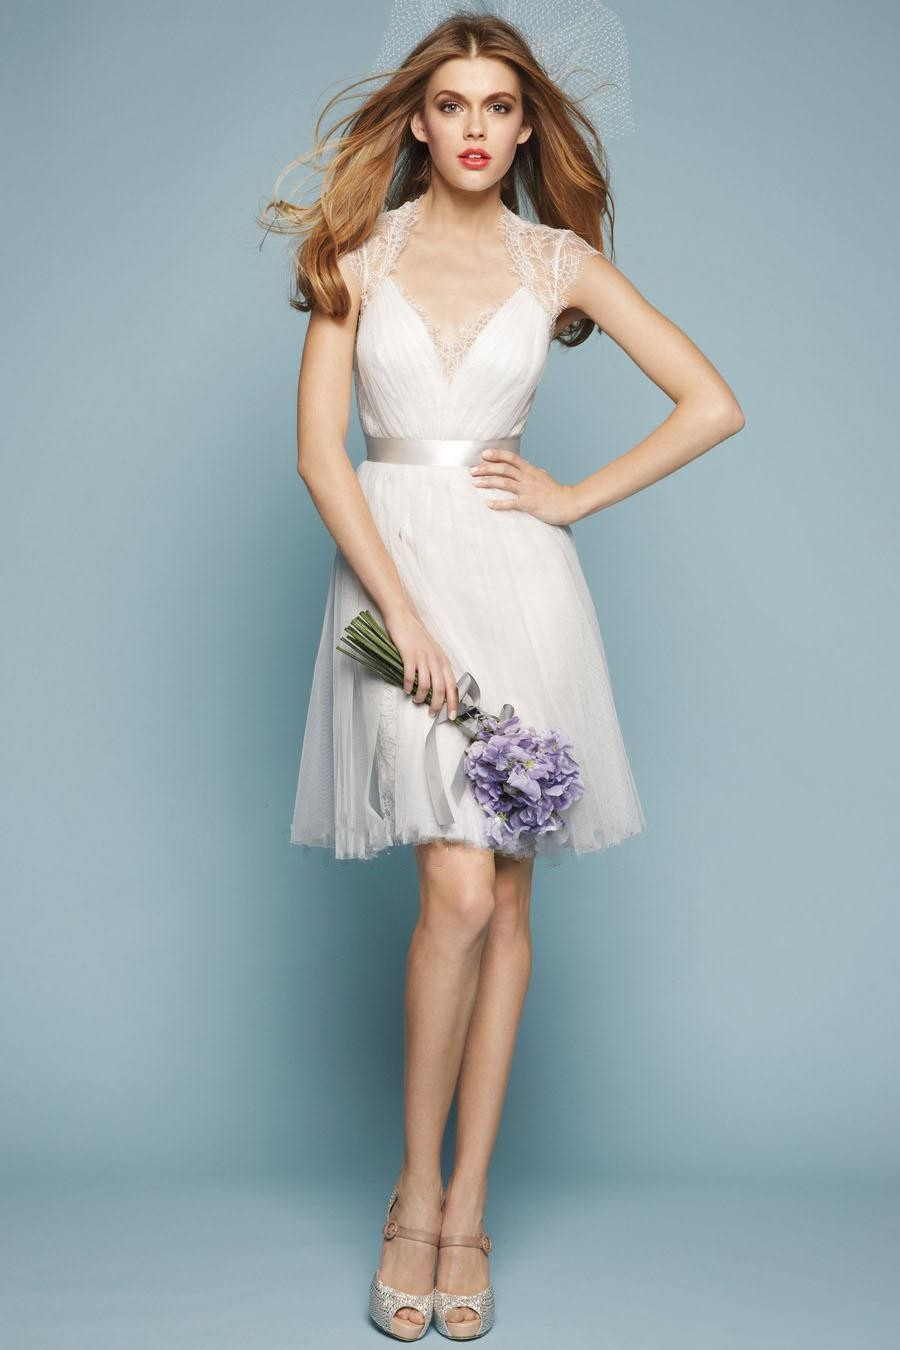 How Long Wedding Dress Should Be: Tips on Choosing the Appropriate ...